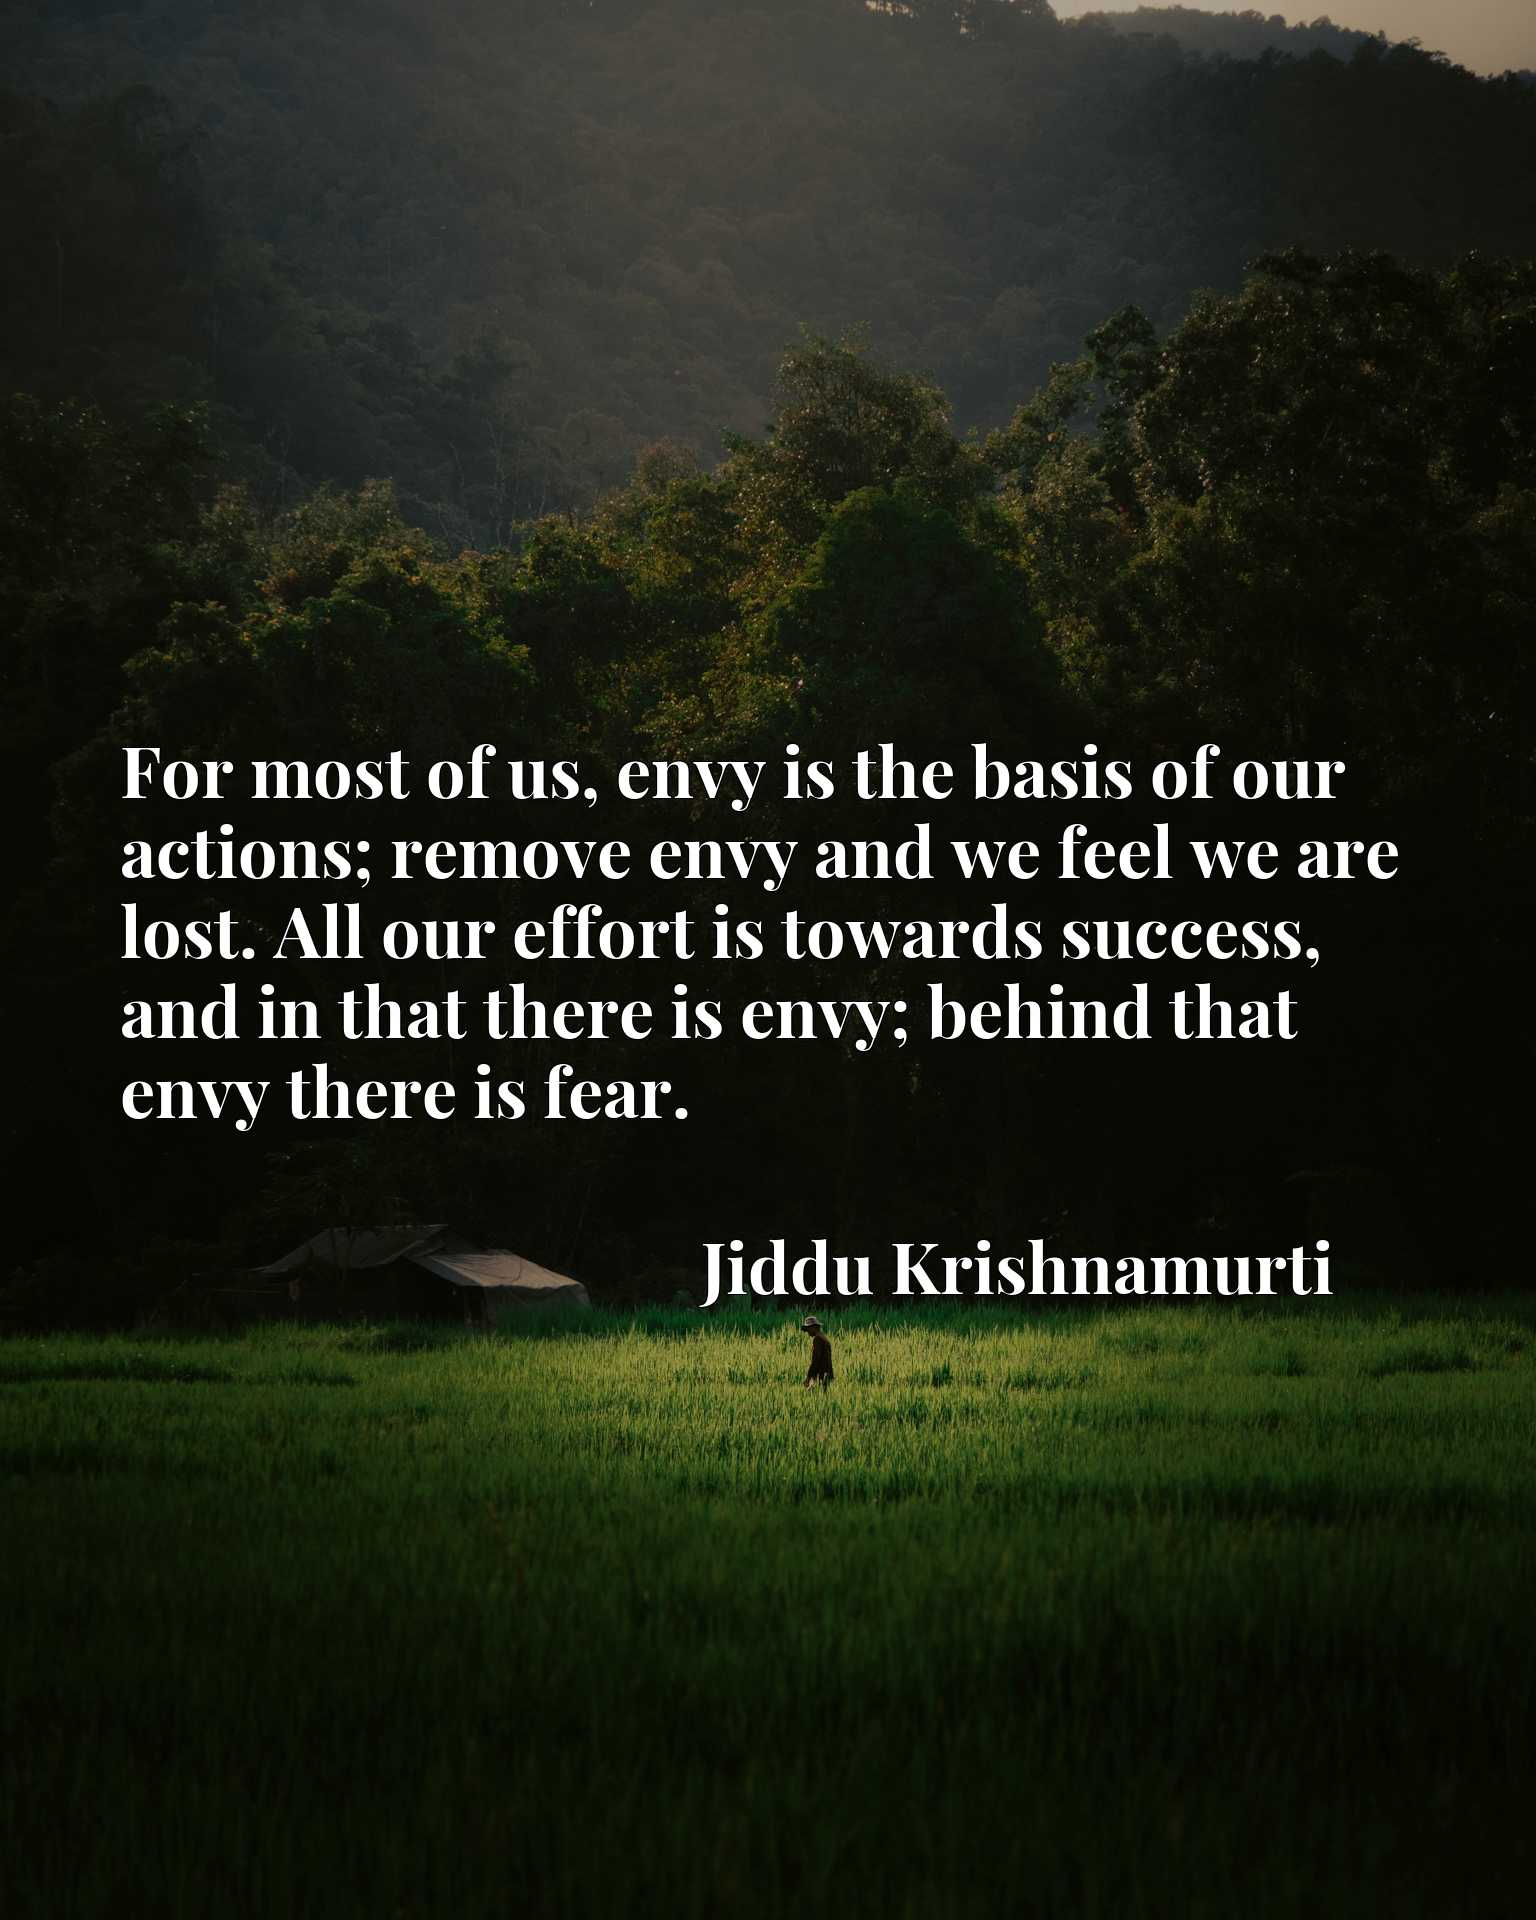 For most of us, envy is the basis of our actions; remove envy and we feel we are lost. All our effort is towards success, and in that there is envy; behind that envy there is fear.